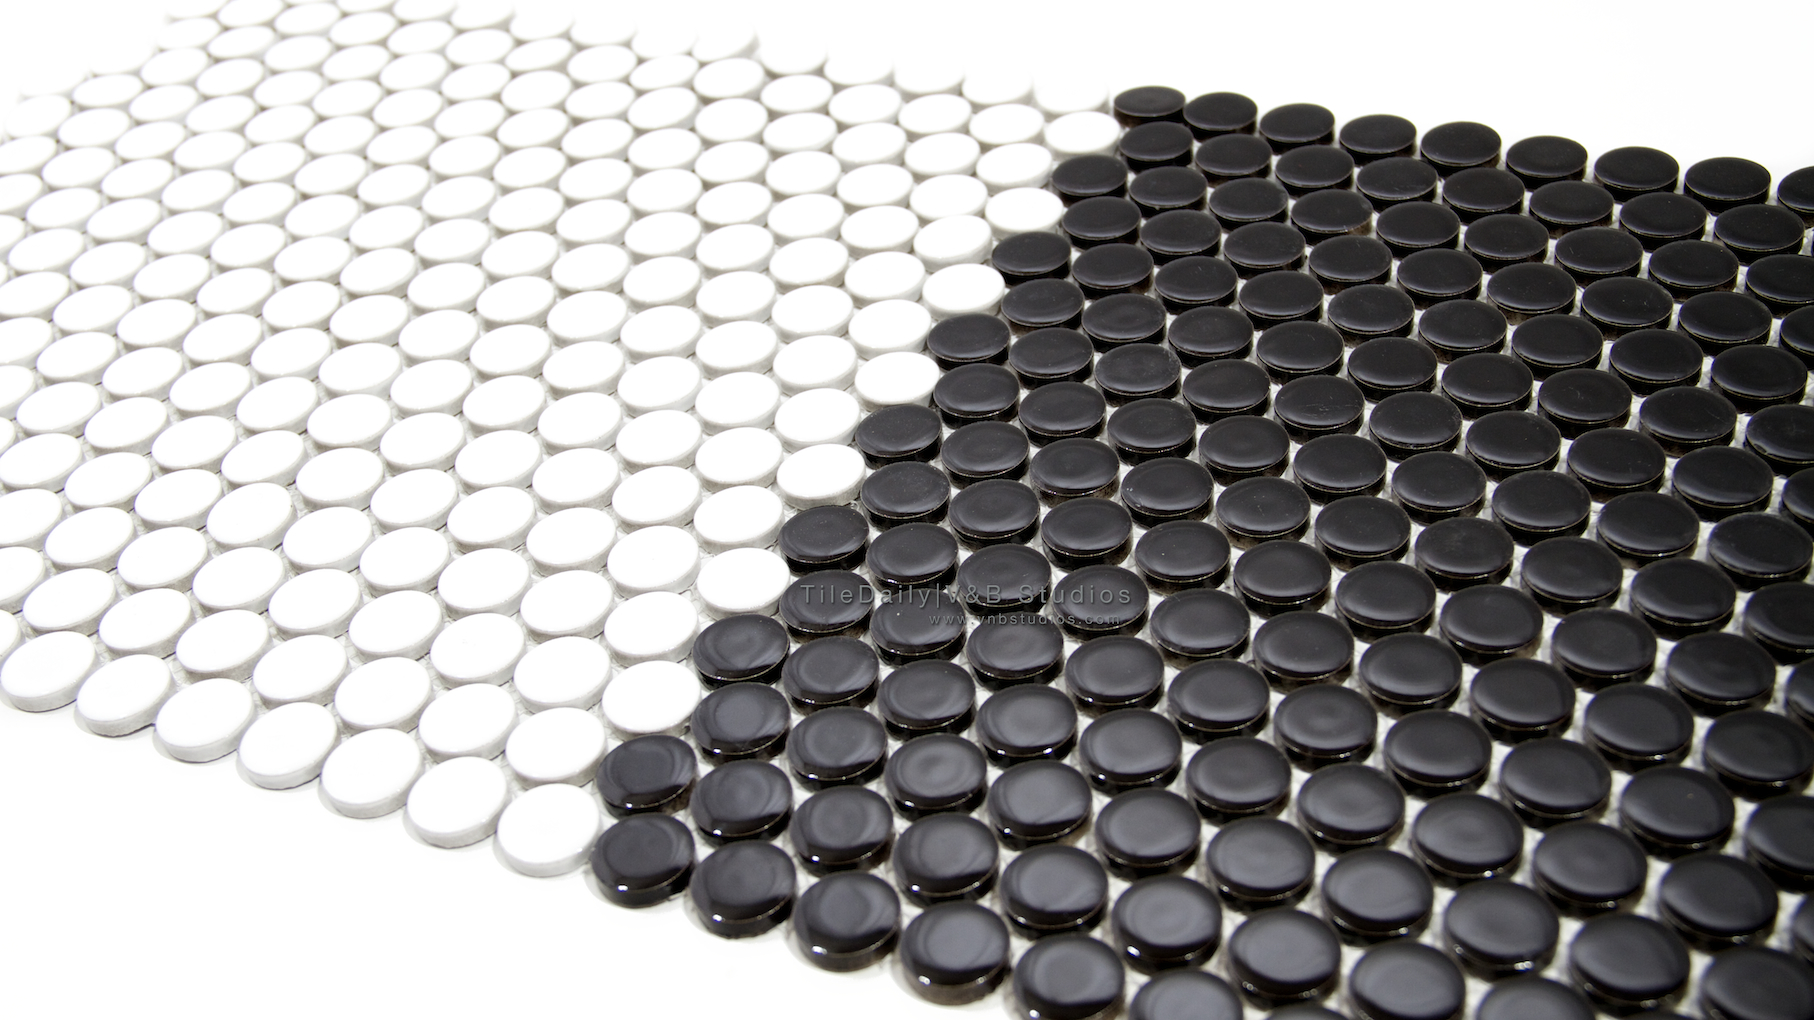 Porcelain Mosaic | tiledaily - Black And White Penny Tile Bathrooms